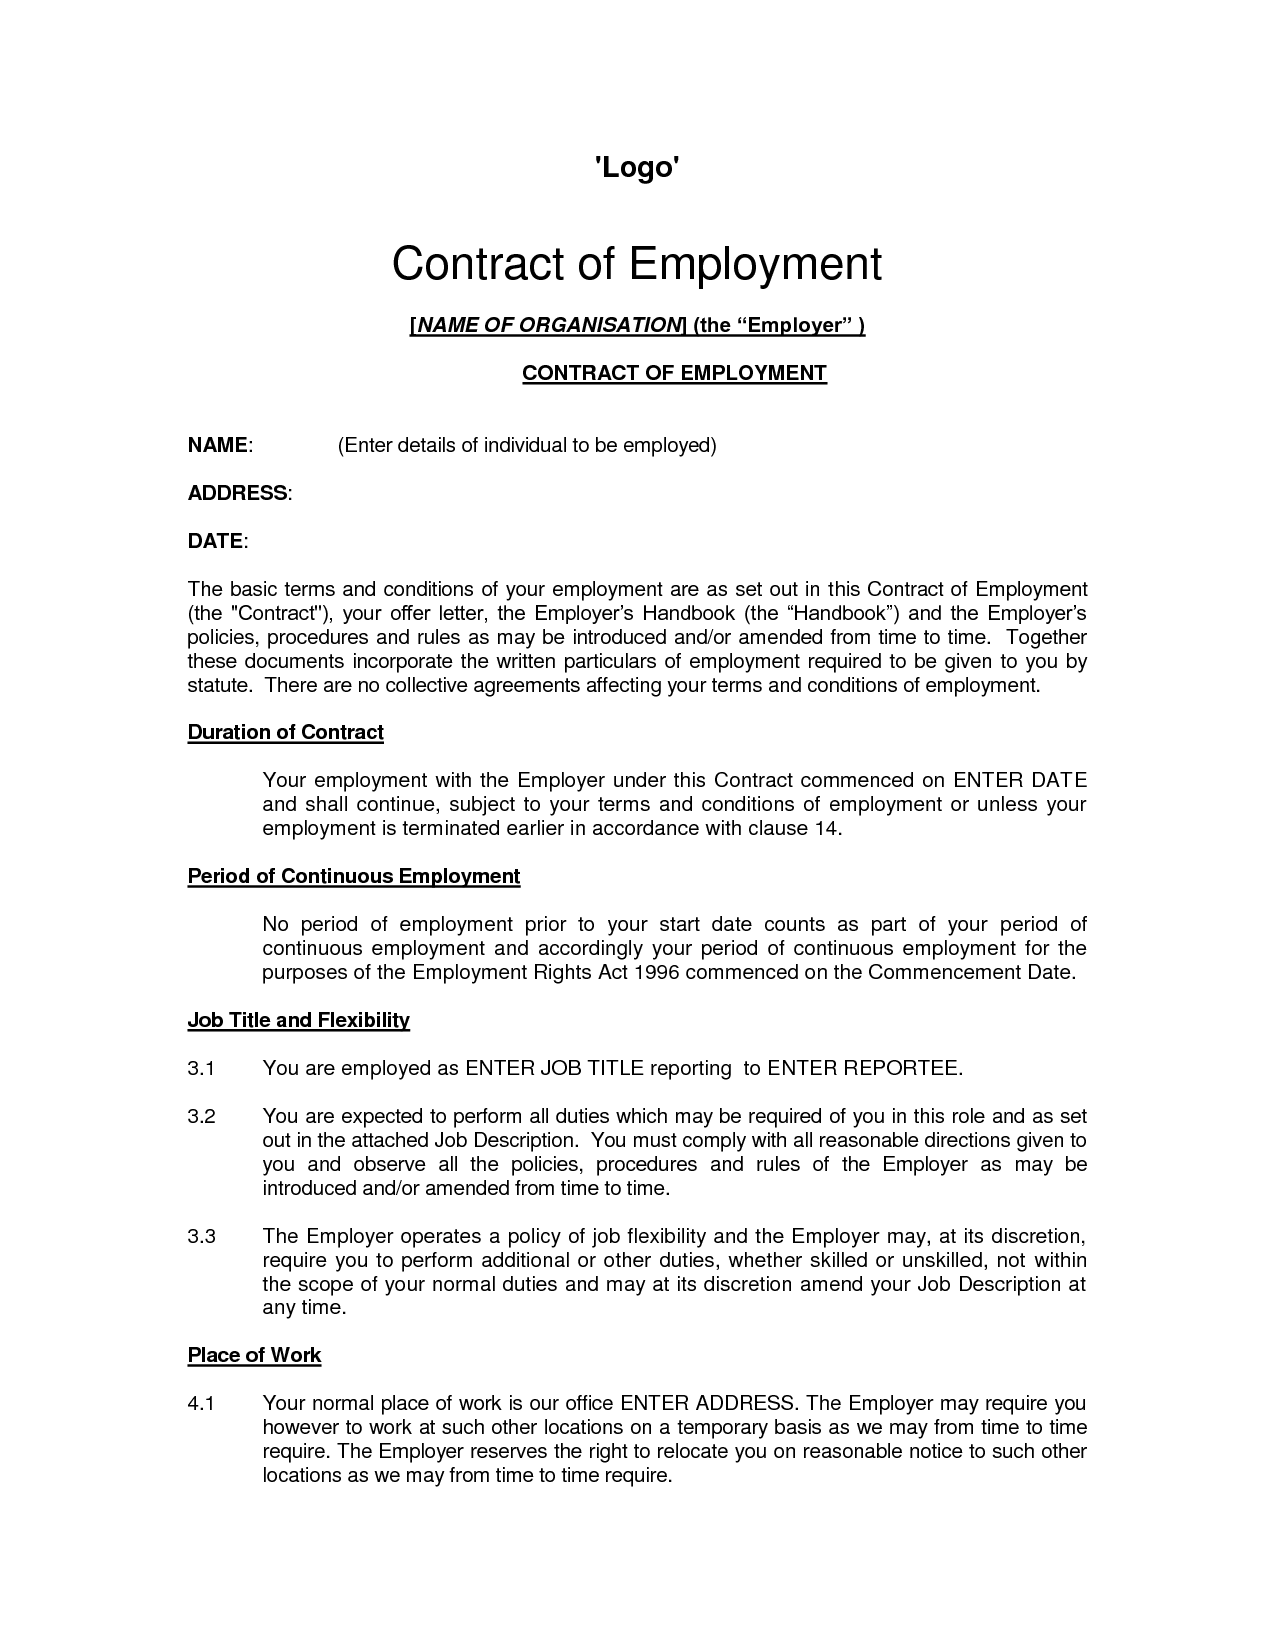 Employment Contract Sample | bravebtr